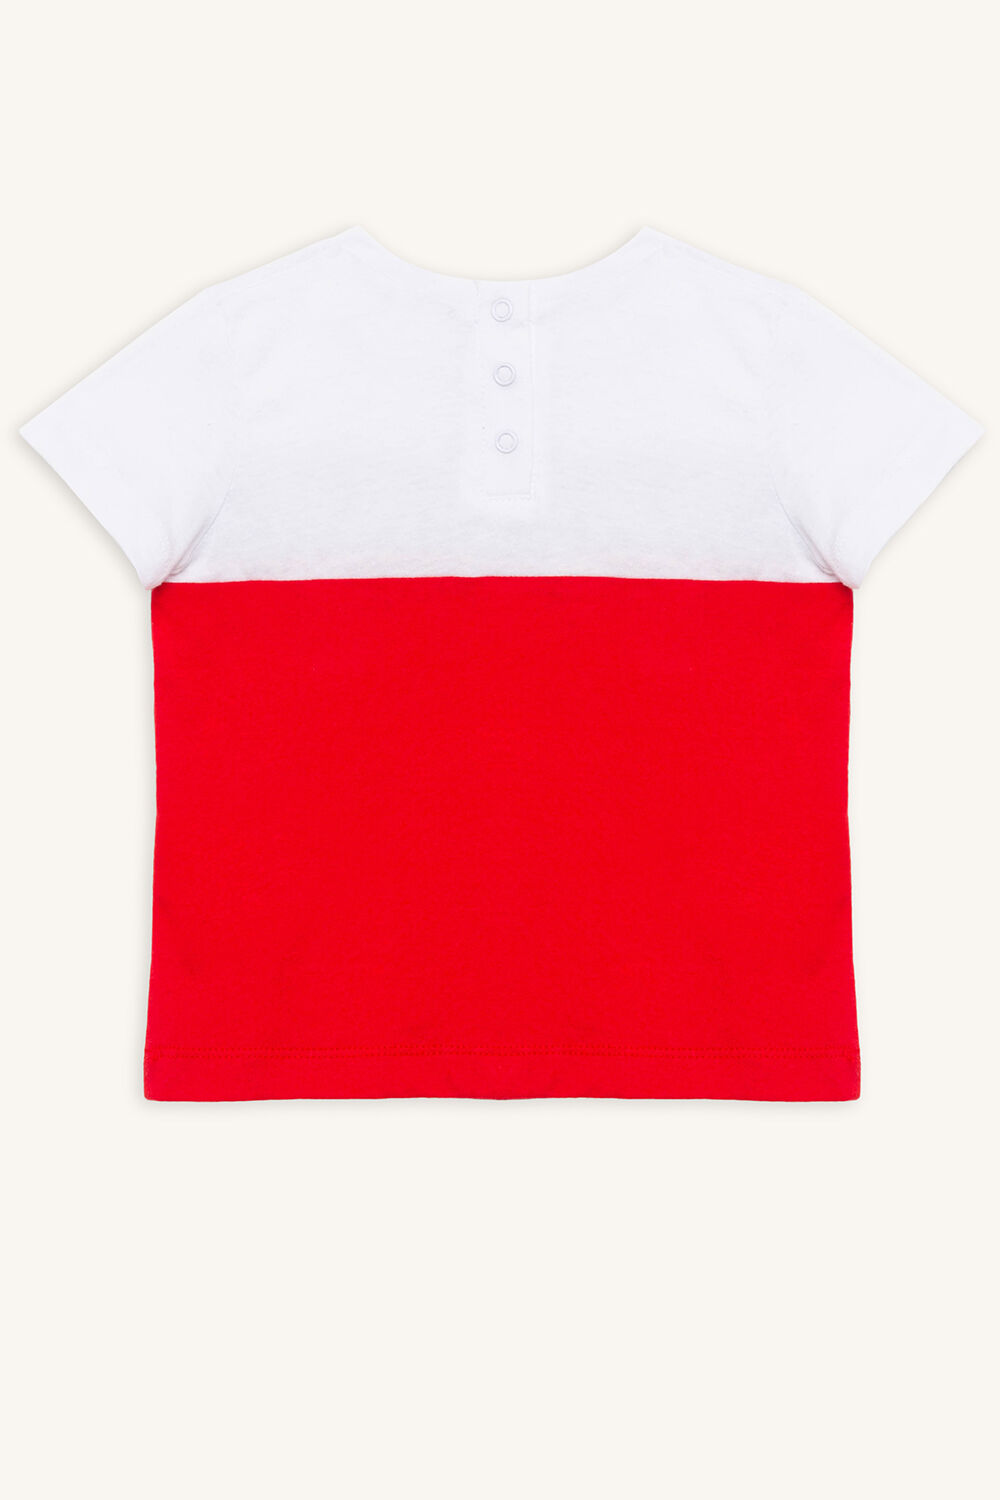 #1 CHAMP TEE in colour FORMULA ONE